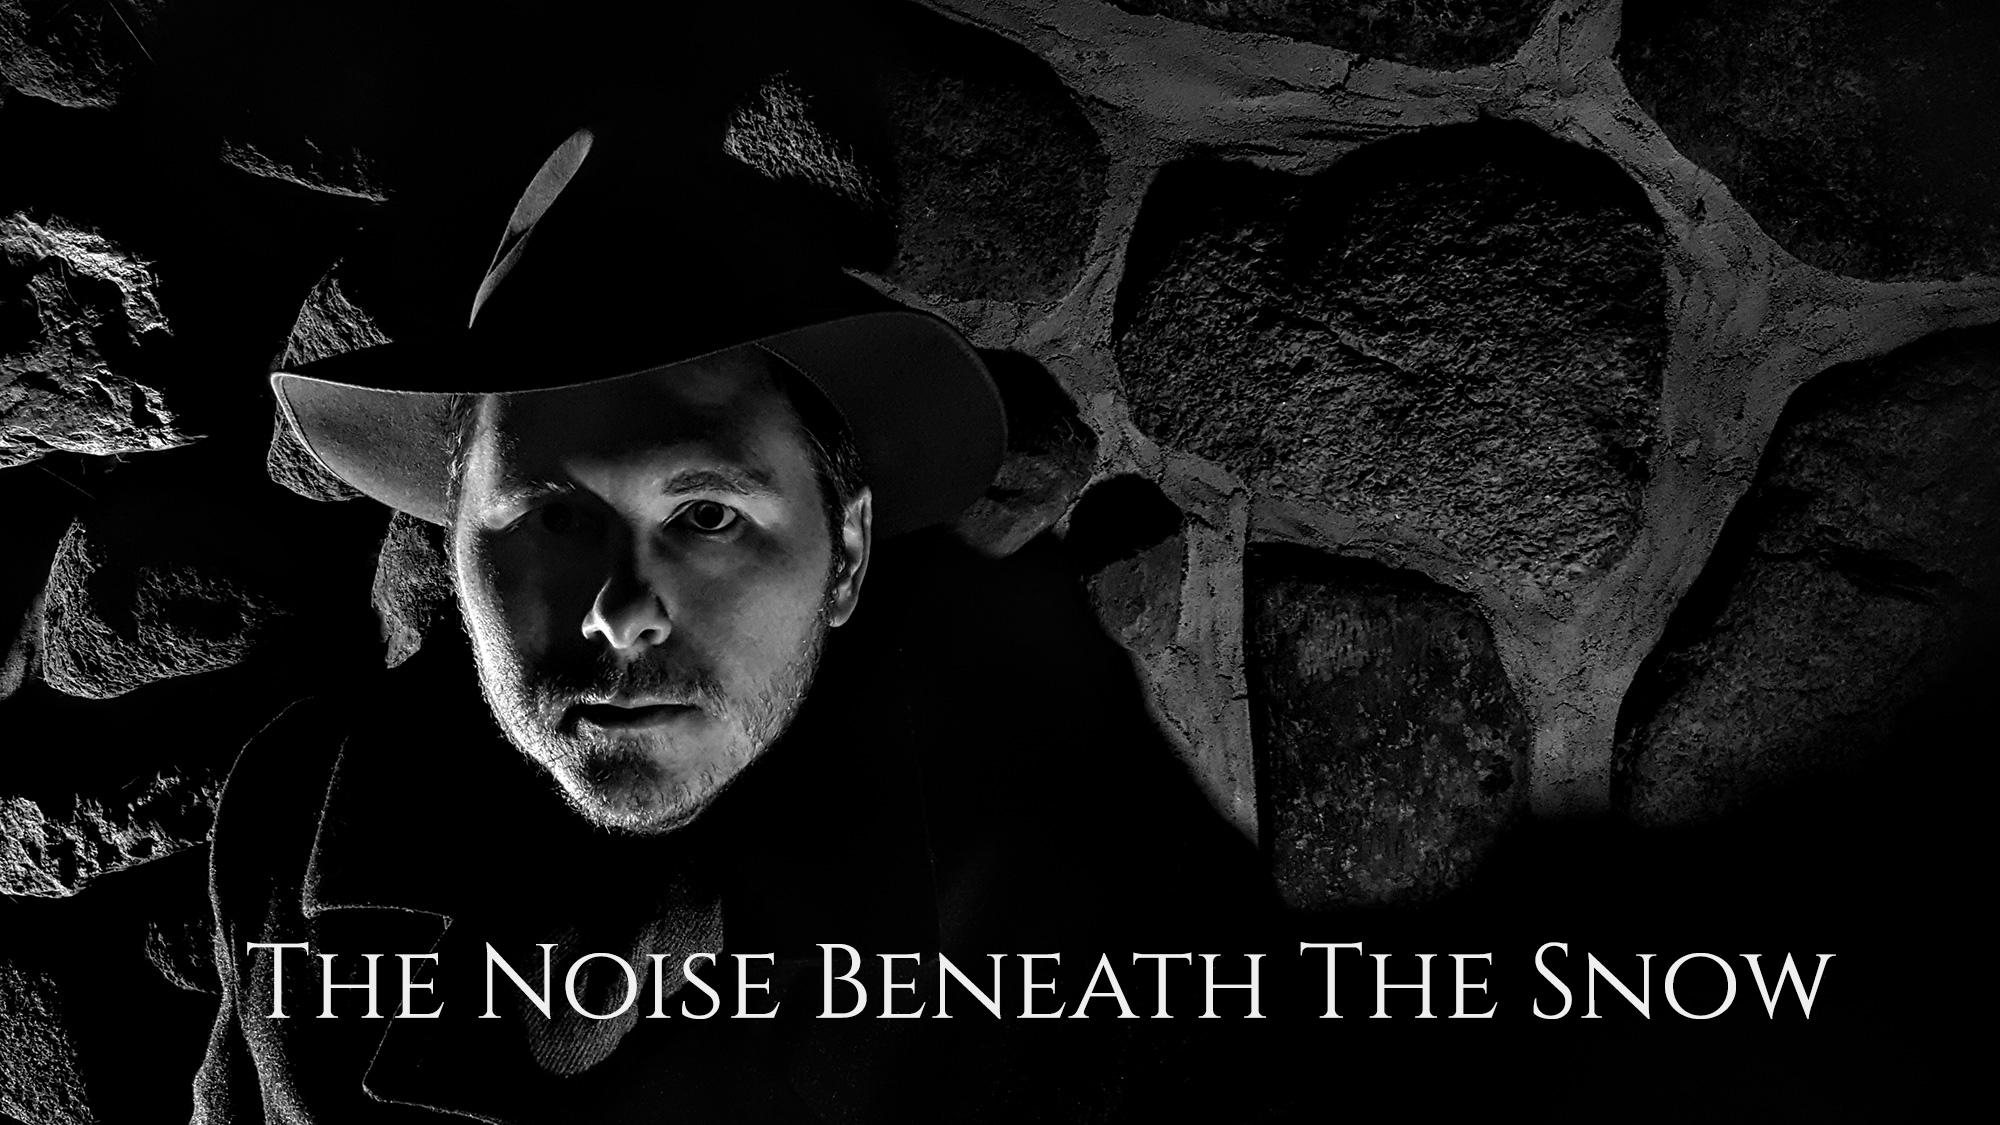 Vision Eternel Interview For The Noise Beneath The Snow